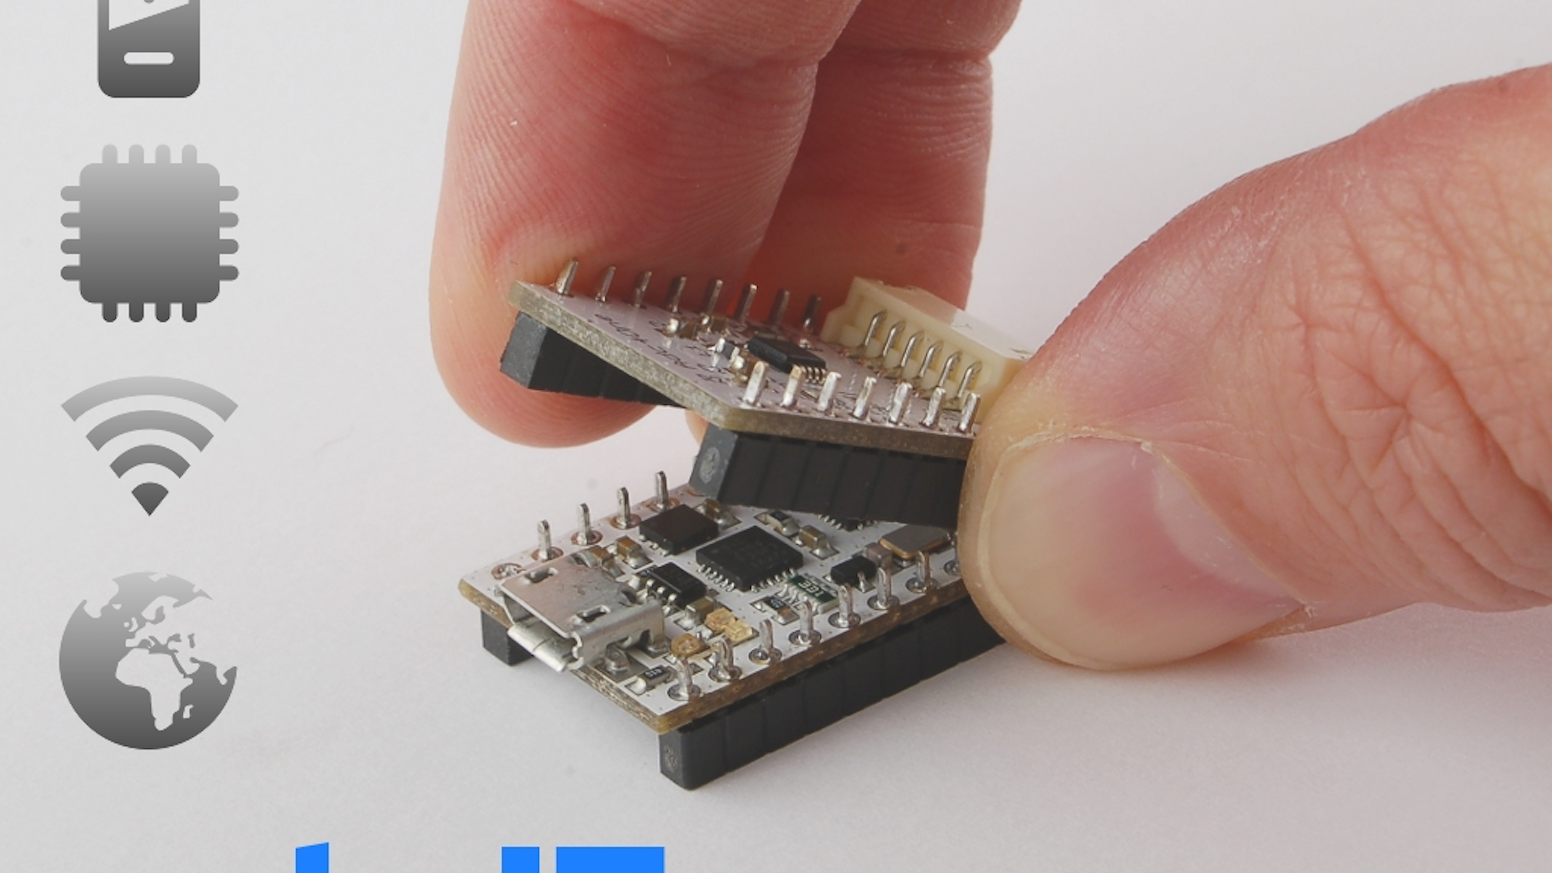 A super cool, super small, Lego like building block system for building really awesome connected devices.